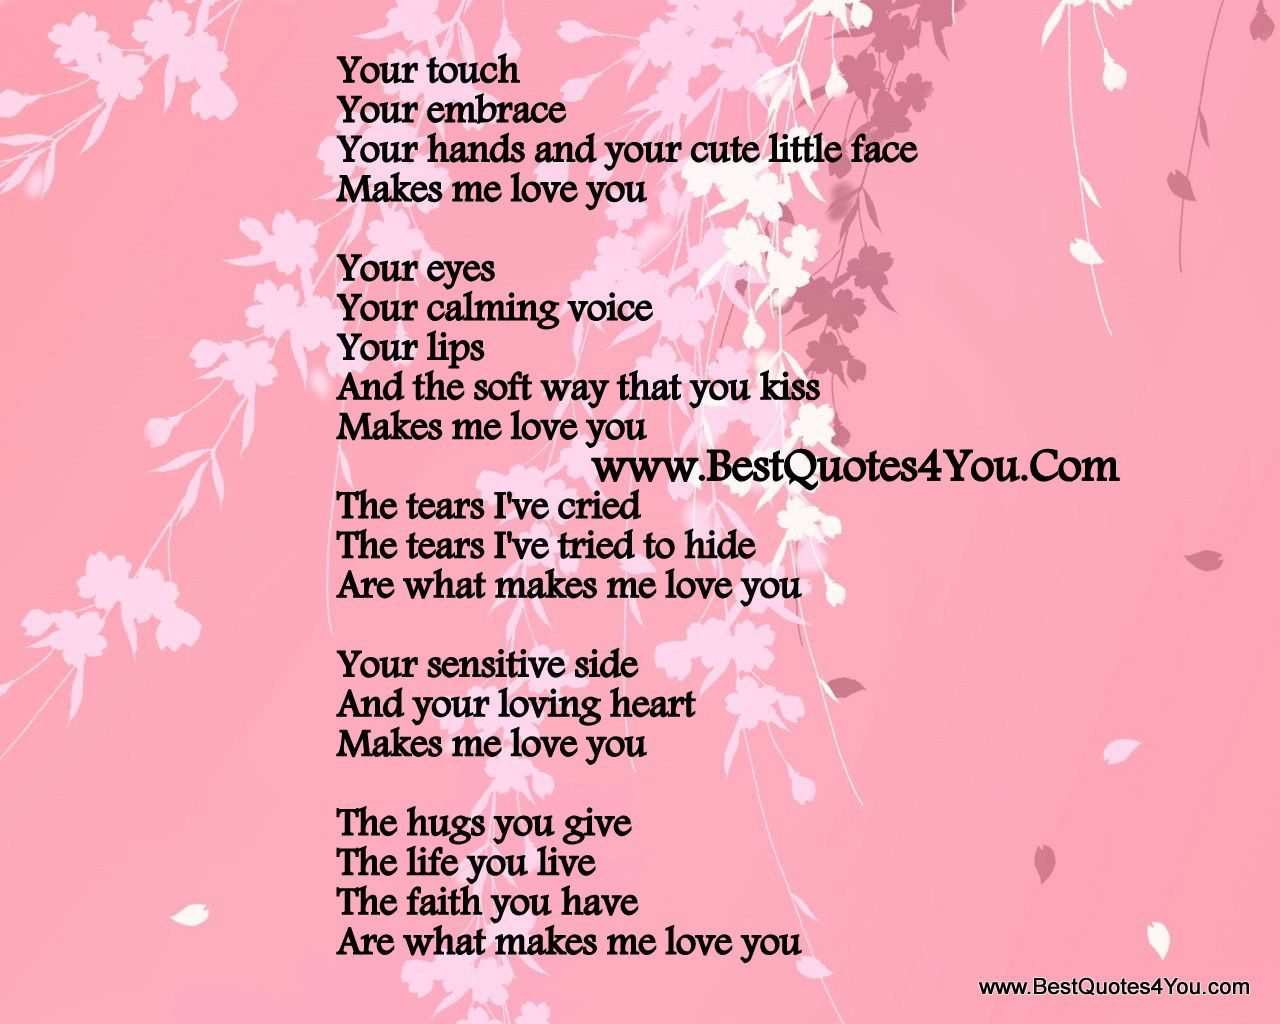 Cute Poems To Send To Your Girlfriend